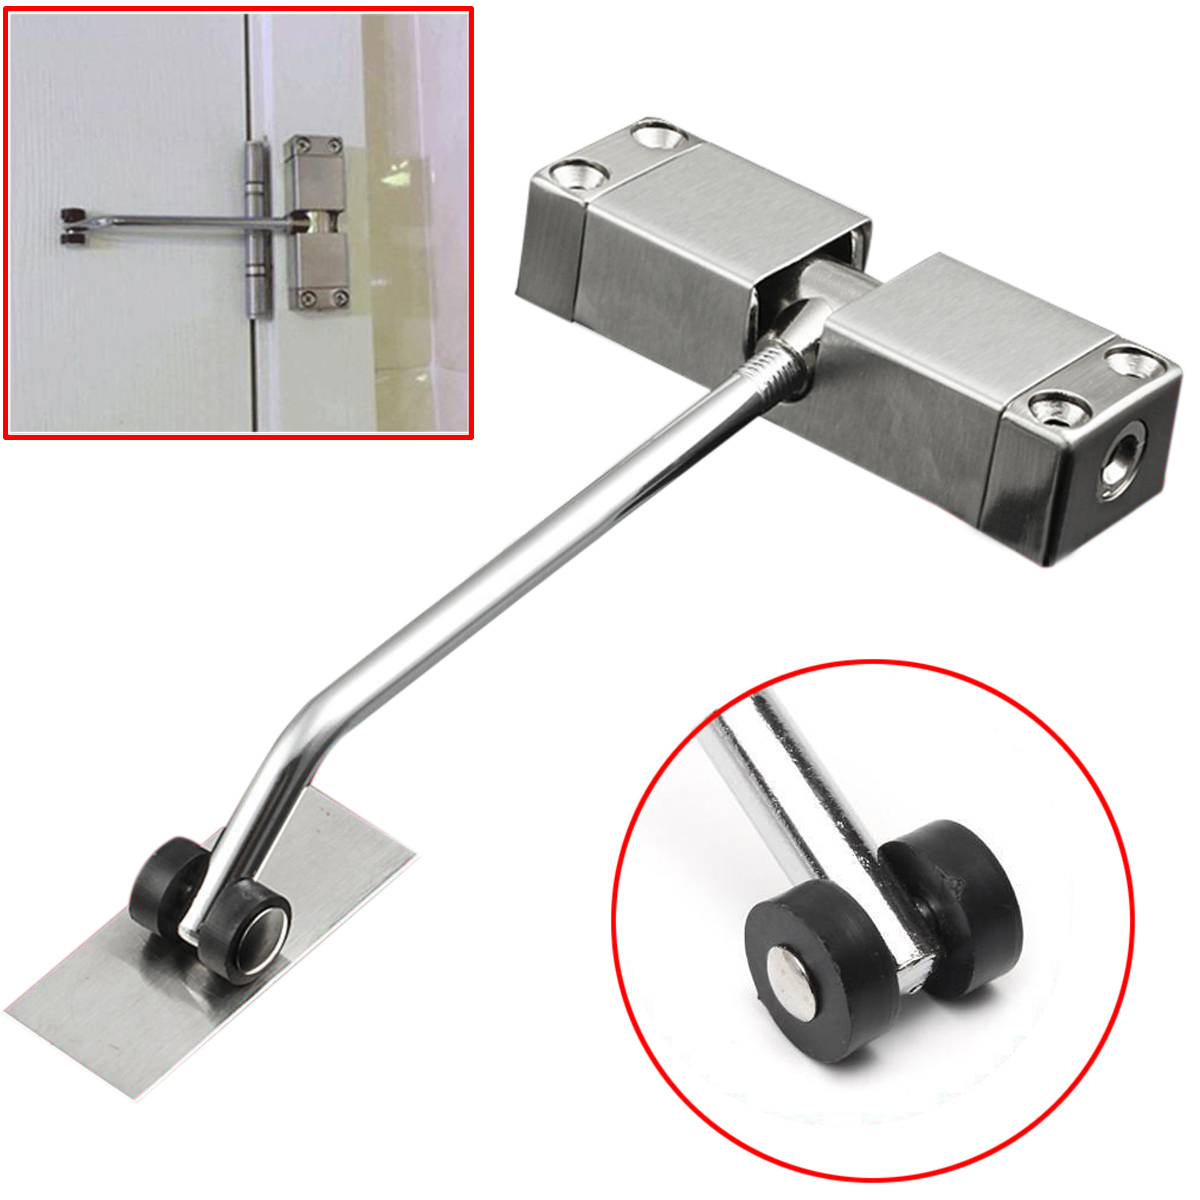 1pc Automatic Mounted Spring Door Closer Stainless Steel Adjustable Surface Door Closer 160x96x20mm 1pc automatic mounted spring door closer stainless steel adjustable surface door closer 160x96x20mm